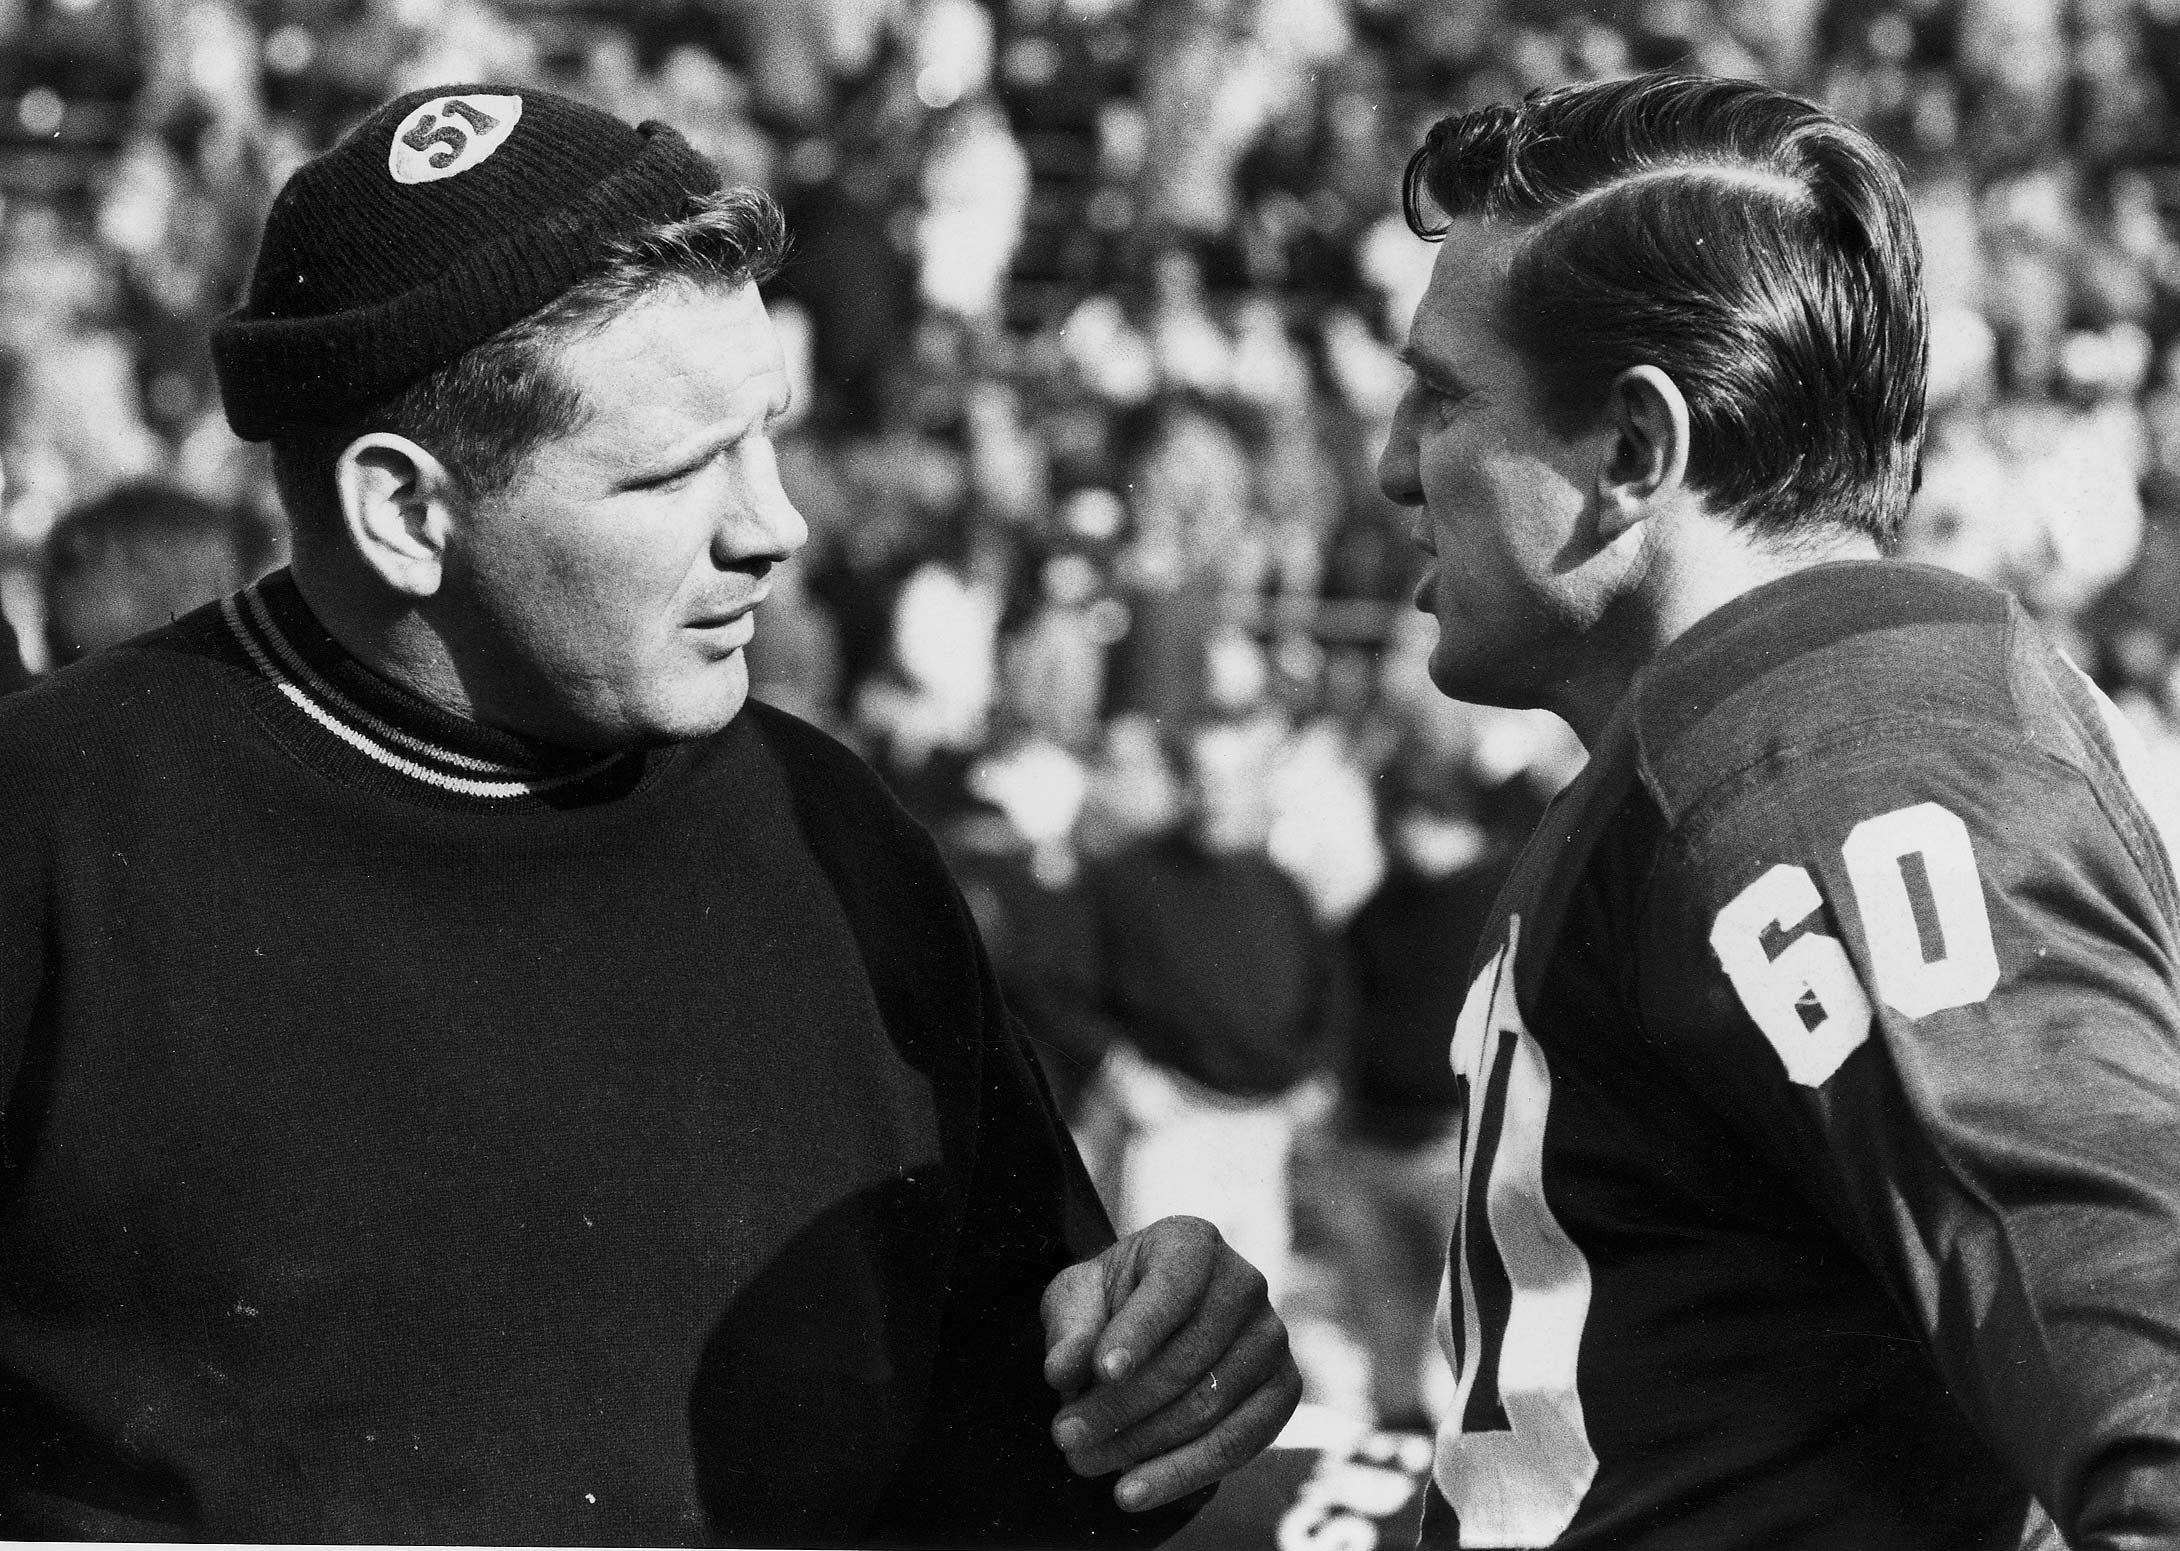 Green Bay Packers blocker Jim Ringo and Chuck Bednarik chat before a 1960 game.